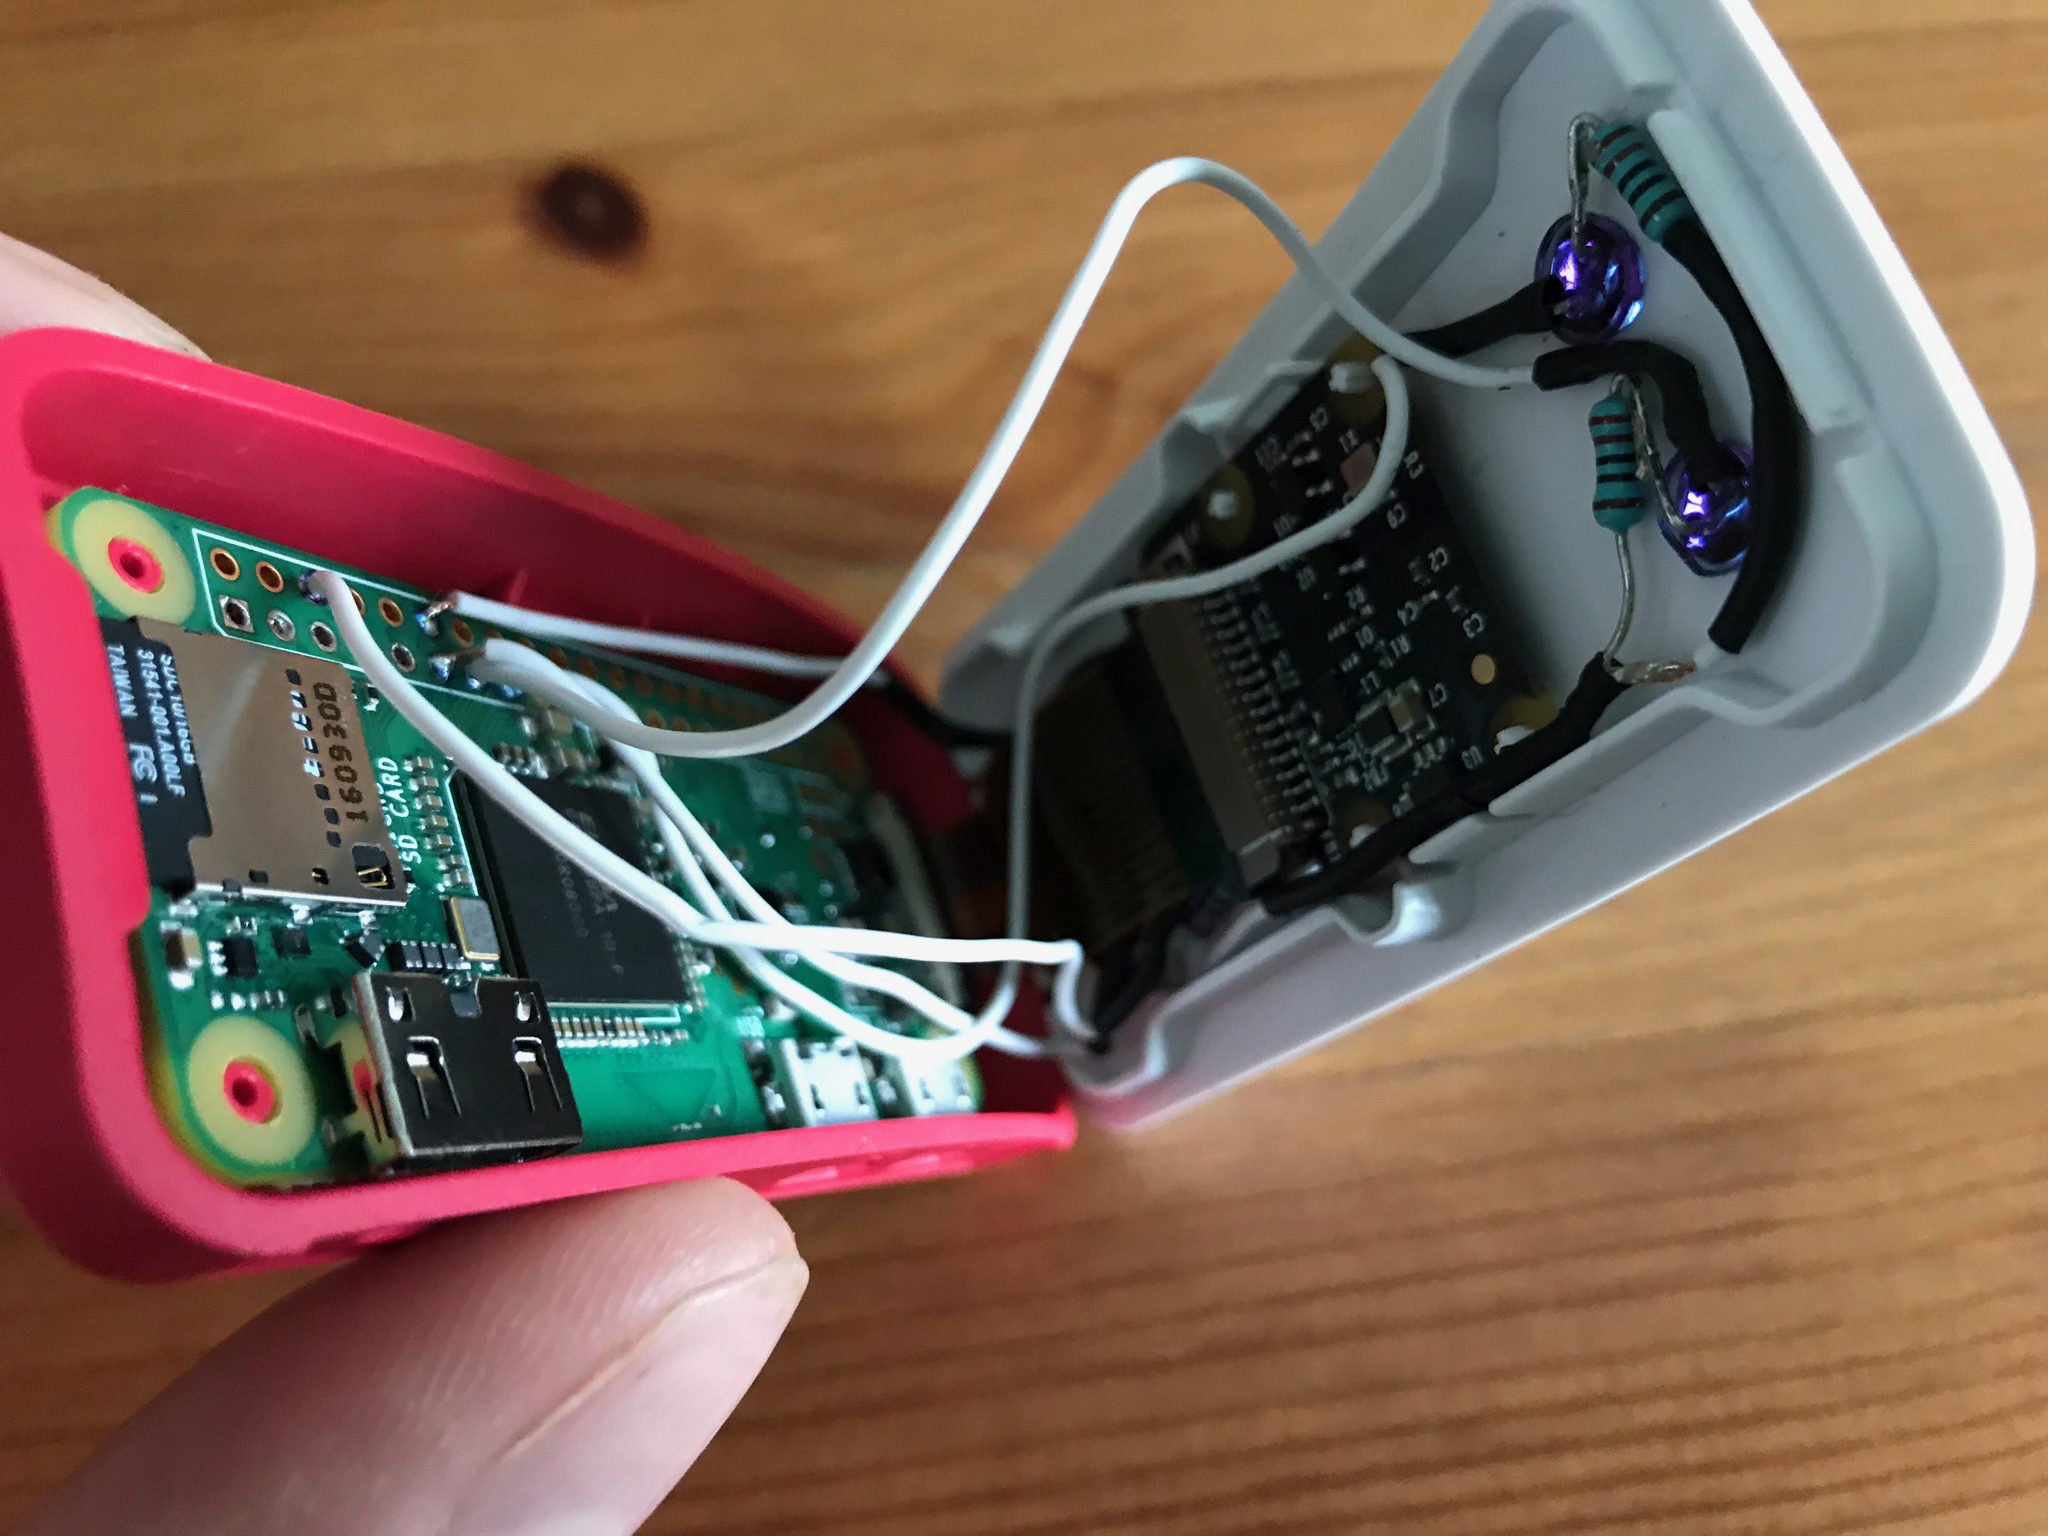 Official Raspberry Pi Zero Case Led Hack Coulis Hacks And Mods Diy Camera Assembling The To Ensure That Wires Were Placed In Best Position